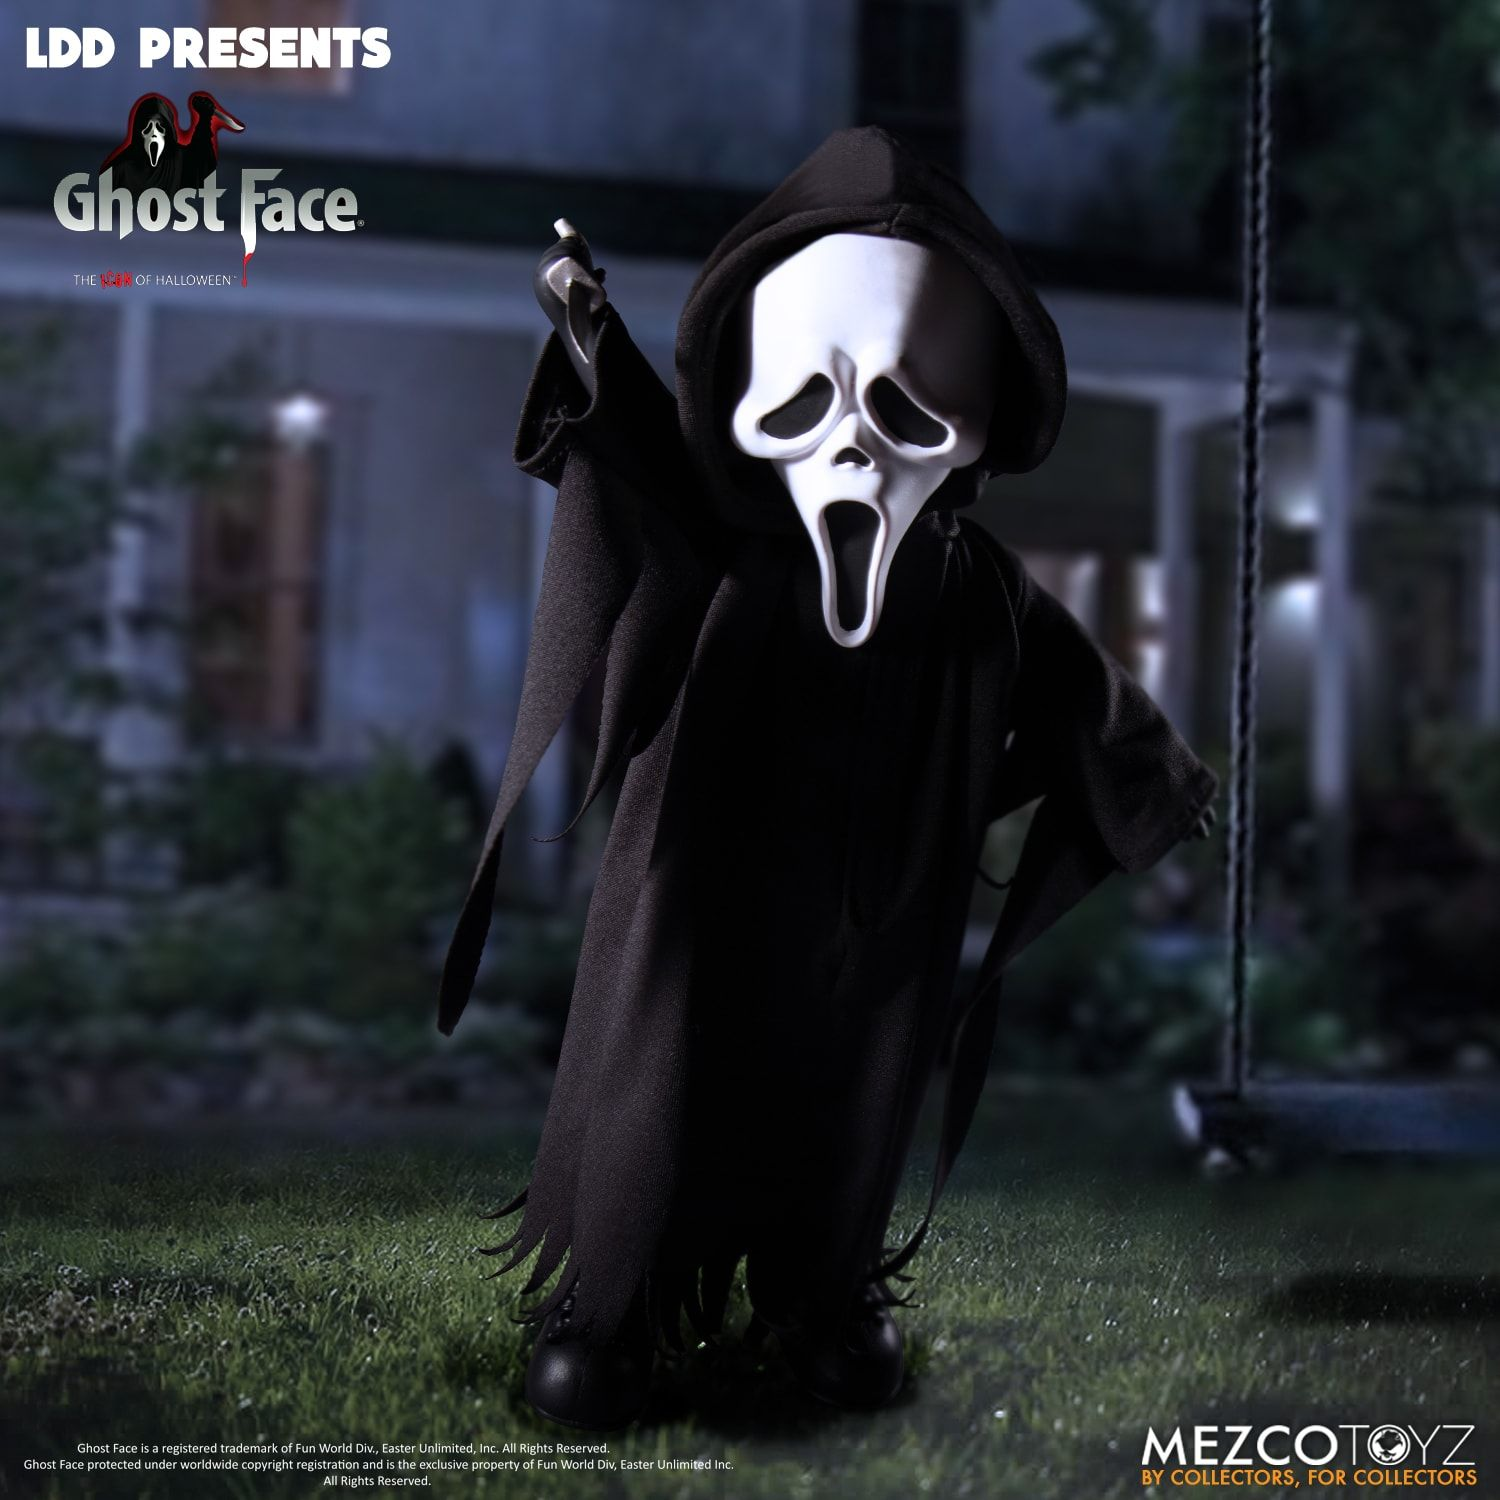 Pre-Order Mezco Living Dead Dolls Ghost Face